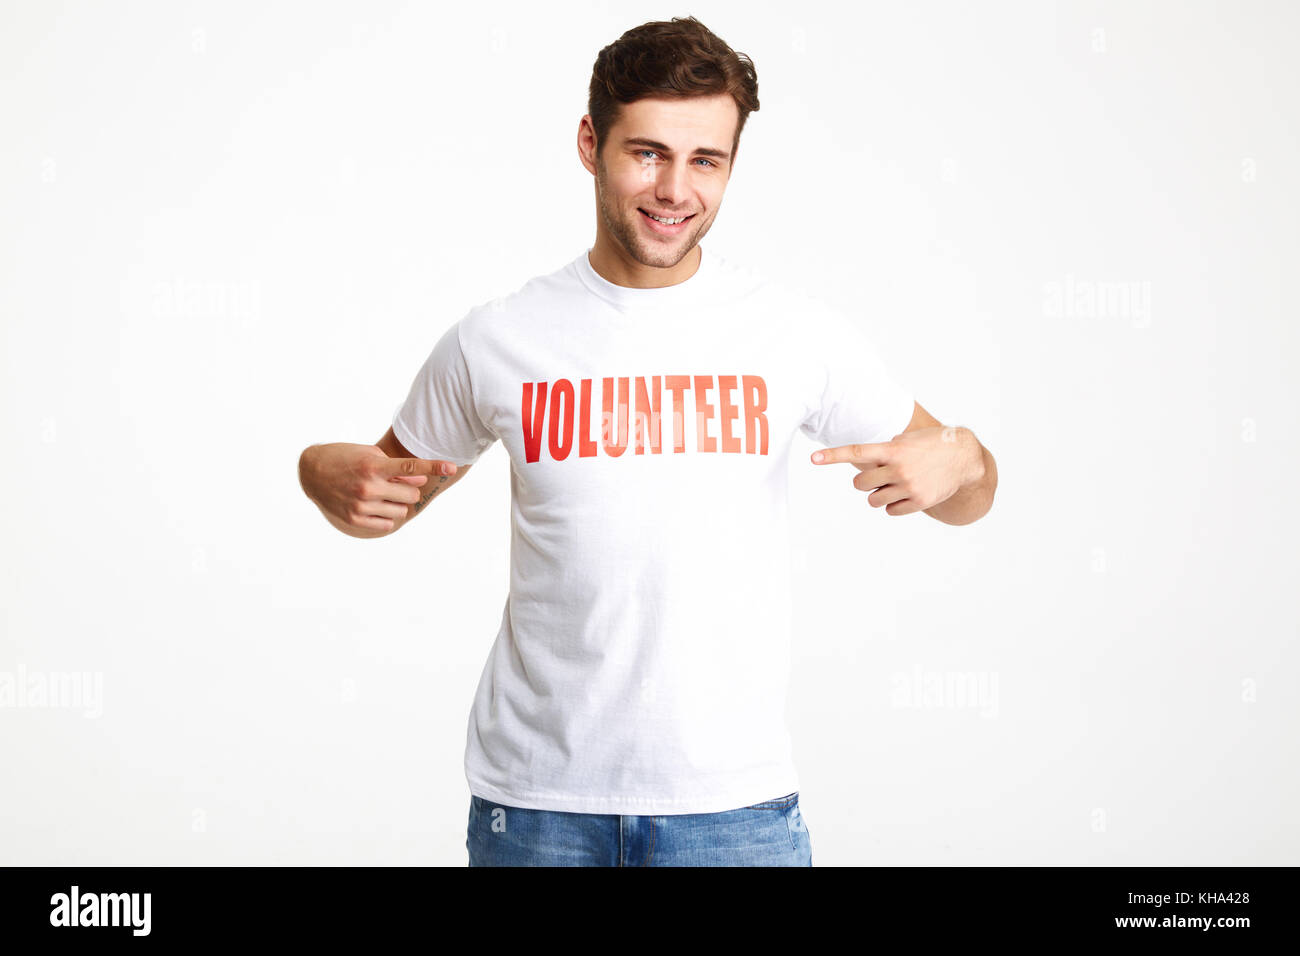 Portrait of a smiling confident man wearing volunteer t-shirt pointing two fingers isolated over white background - Stock Image